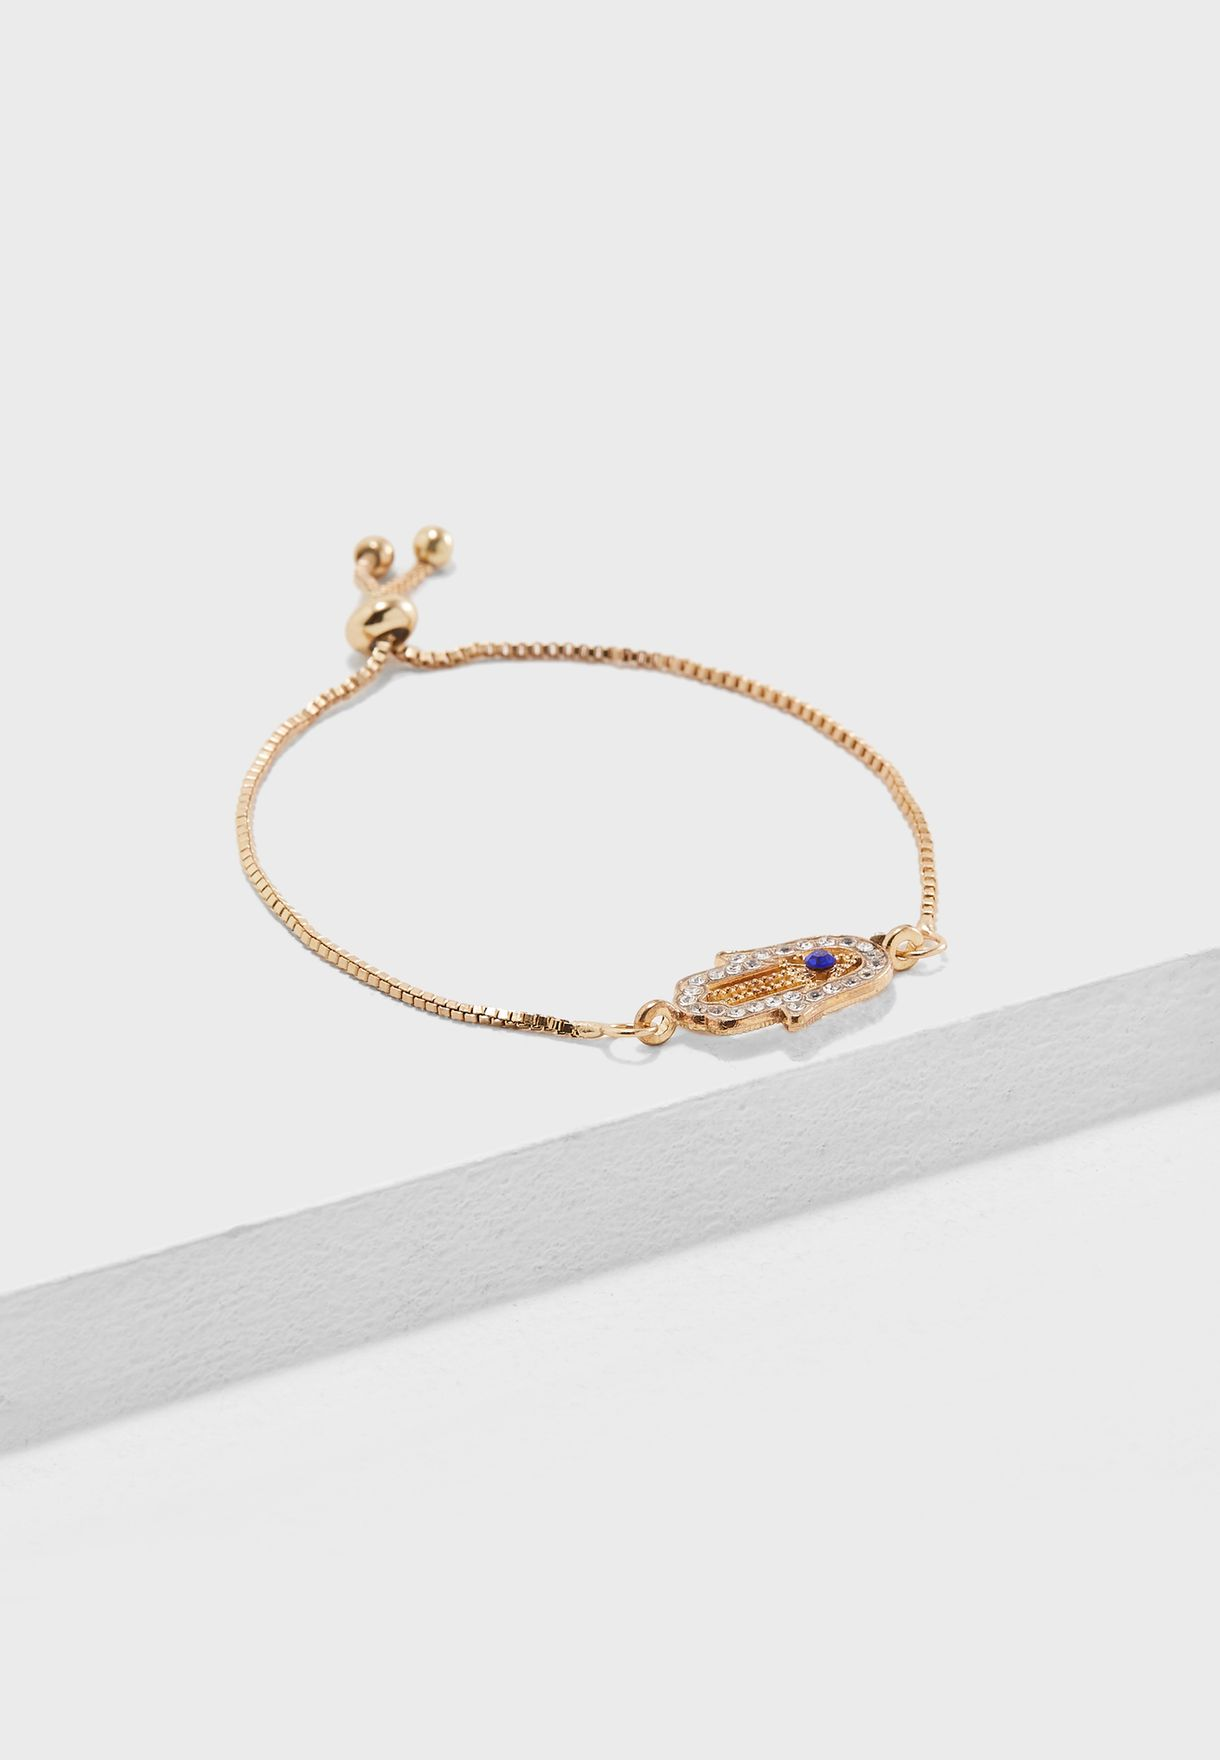 Shop Ella Gold Hamsa Hand Bracelet FJ18815 For Women In UAE